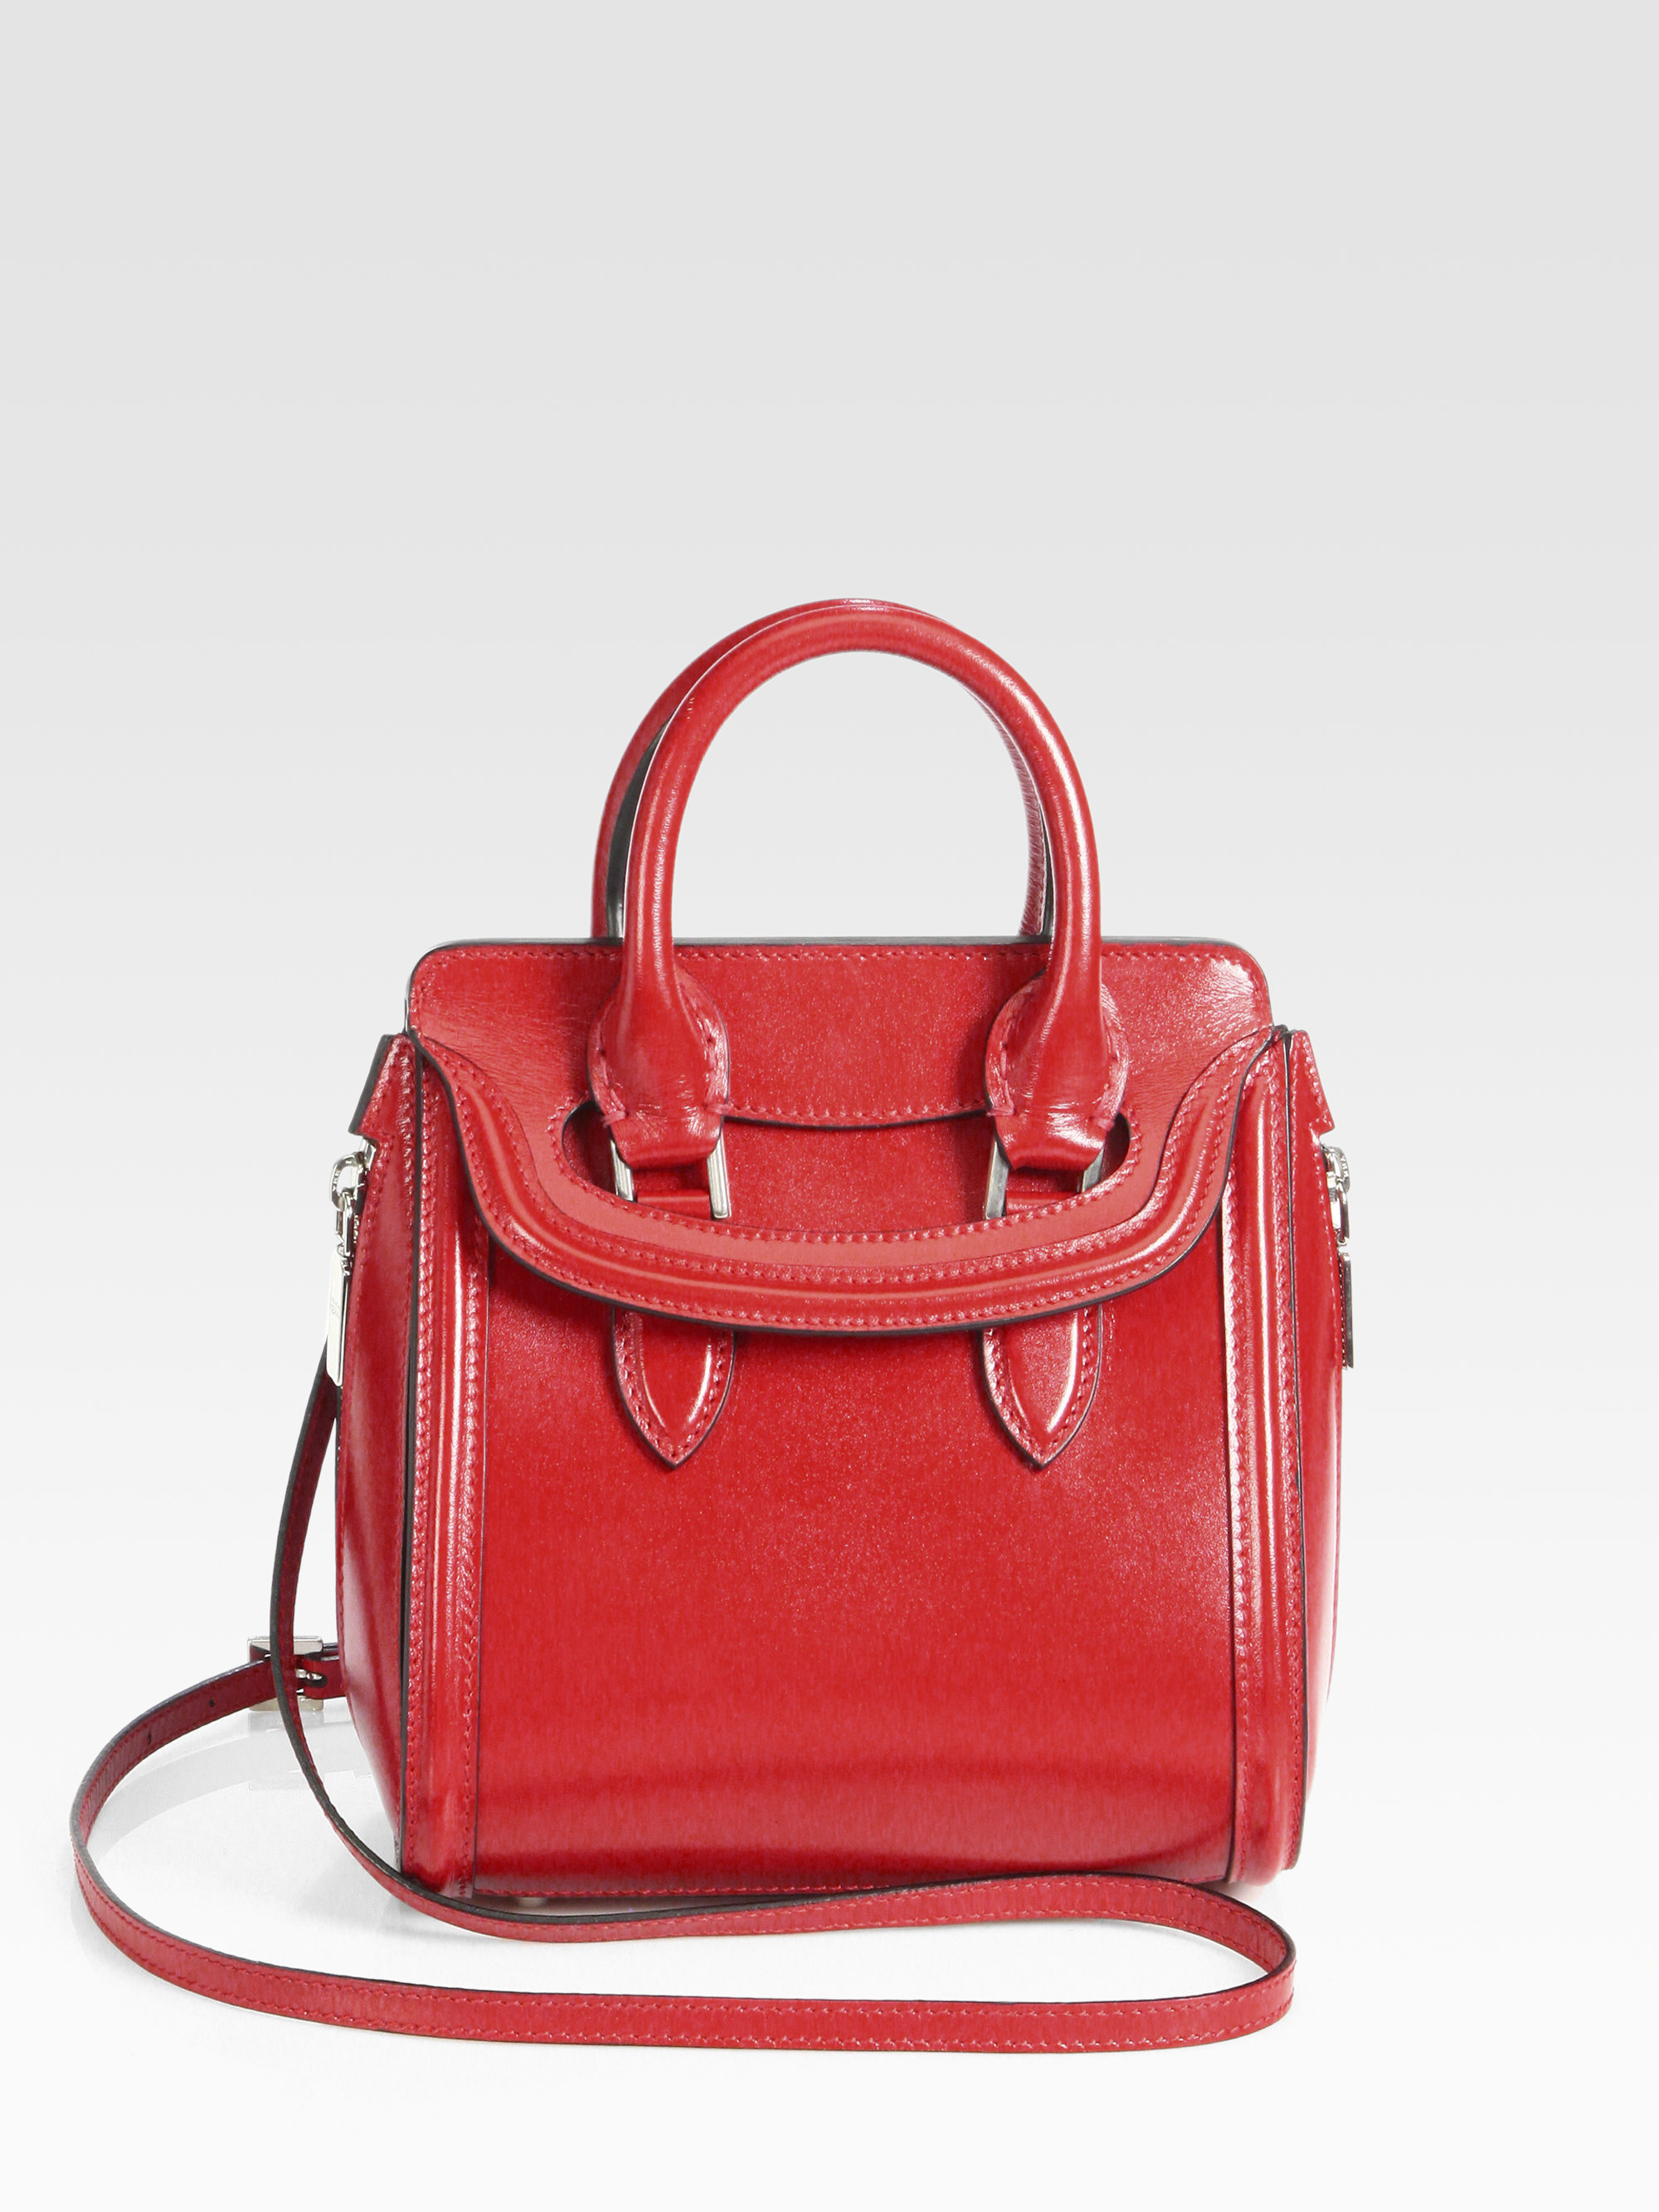 Alexander Mcqueen Heroine Mini Crossbody Bag in Red | Lyst